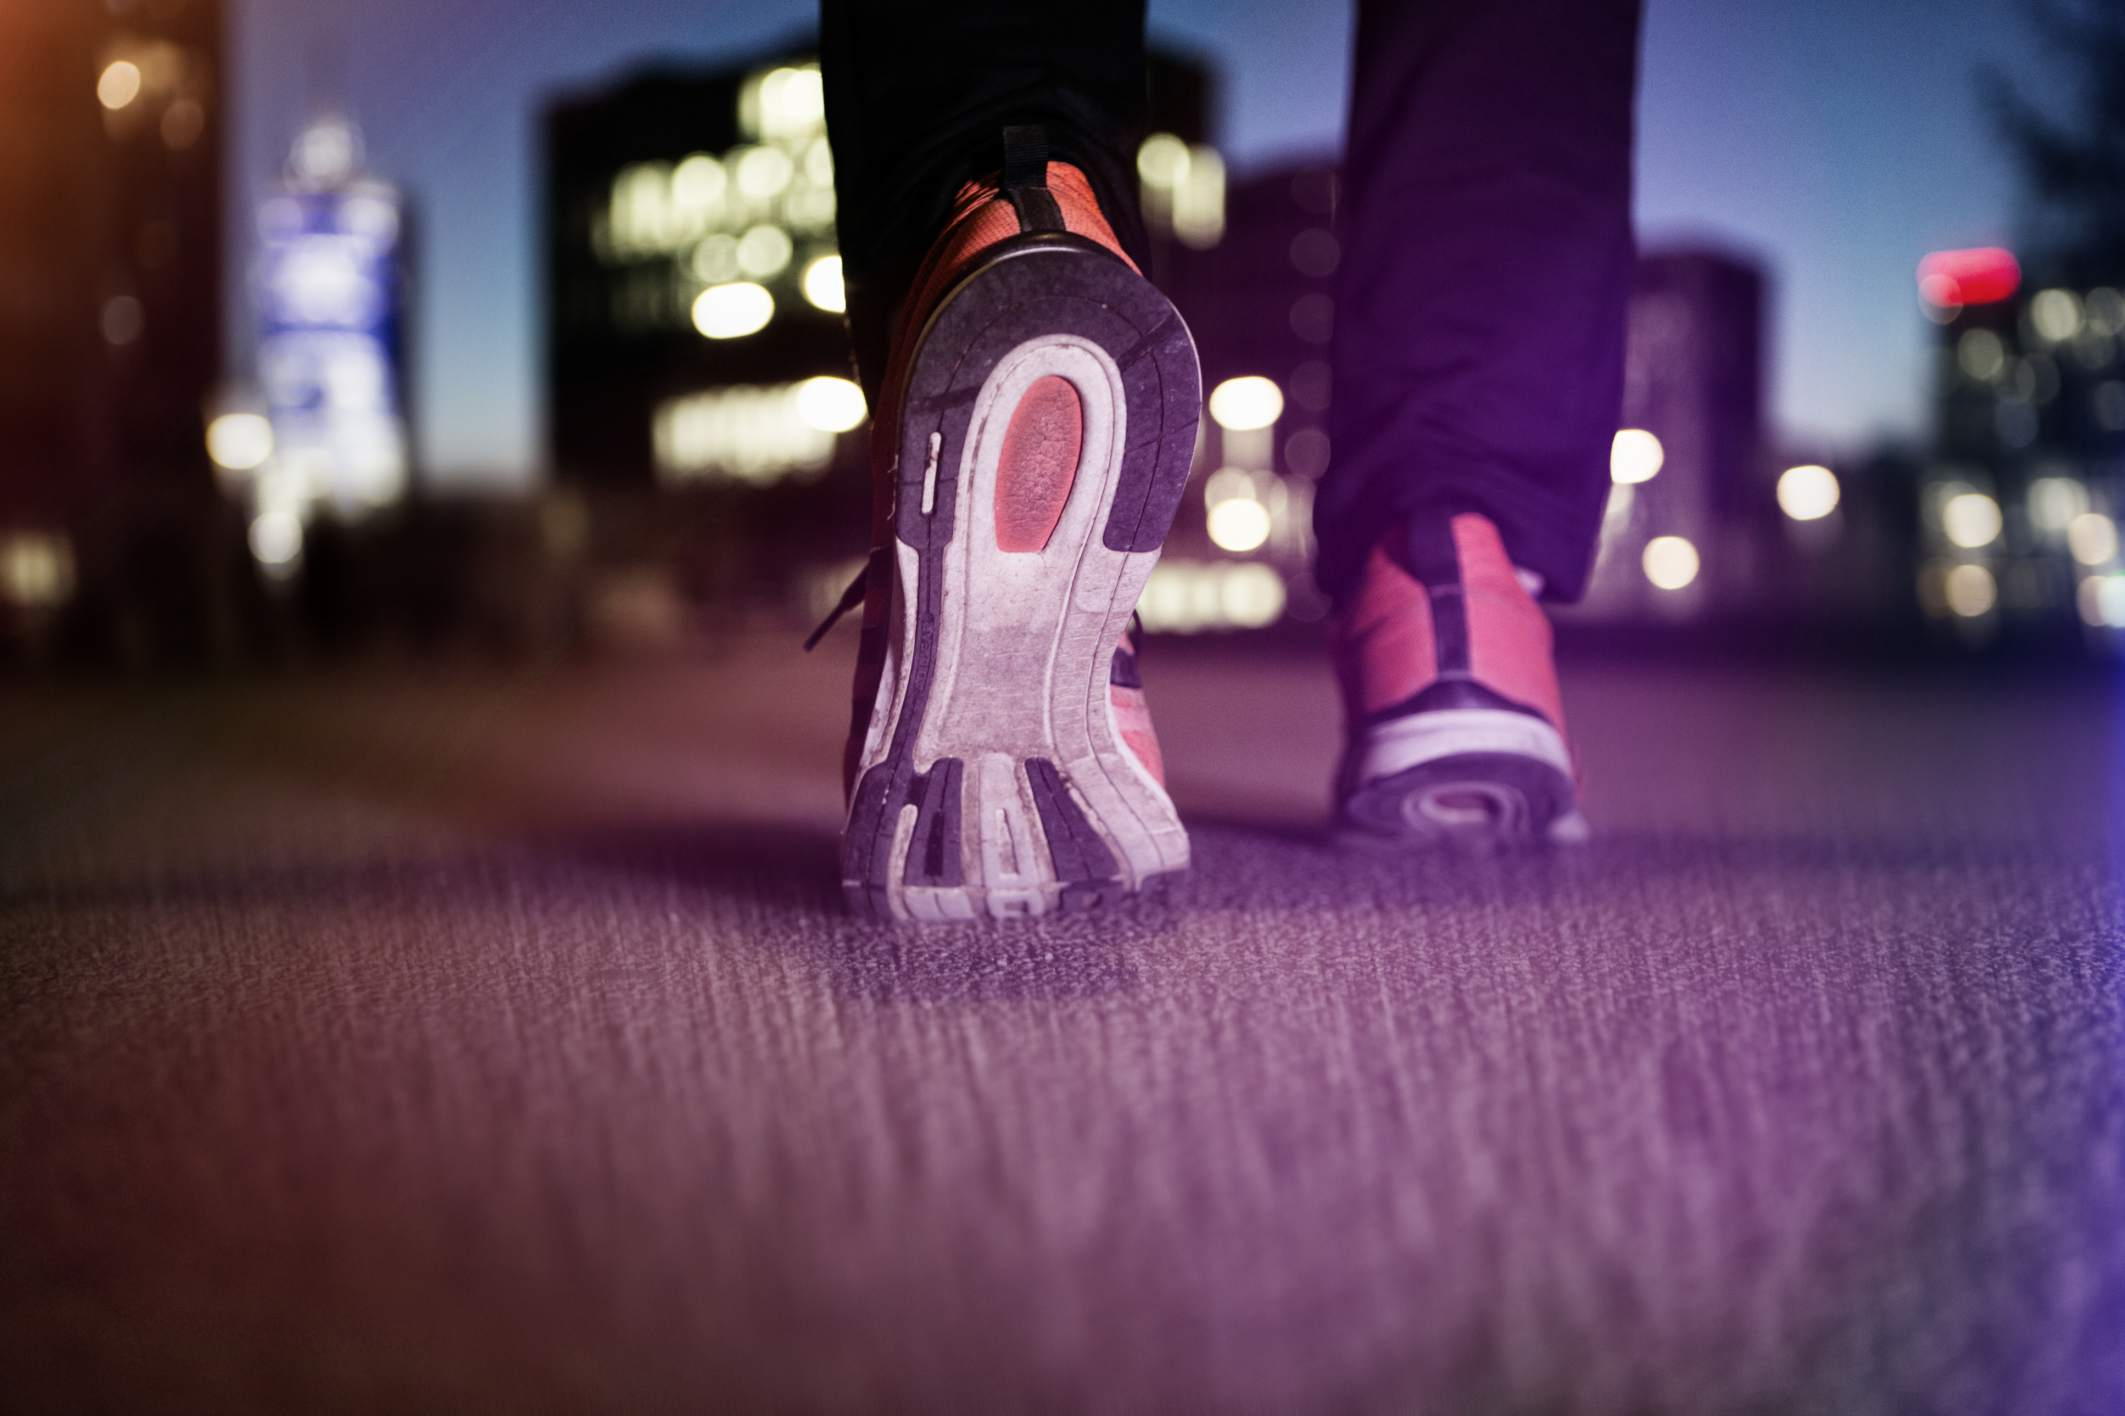 close up sneakers on pavement during nighttime walk